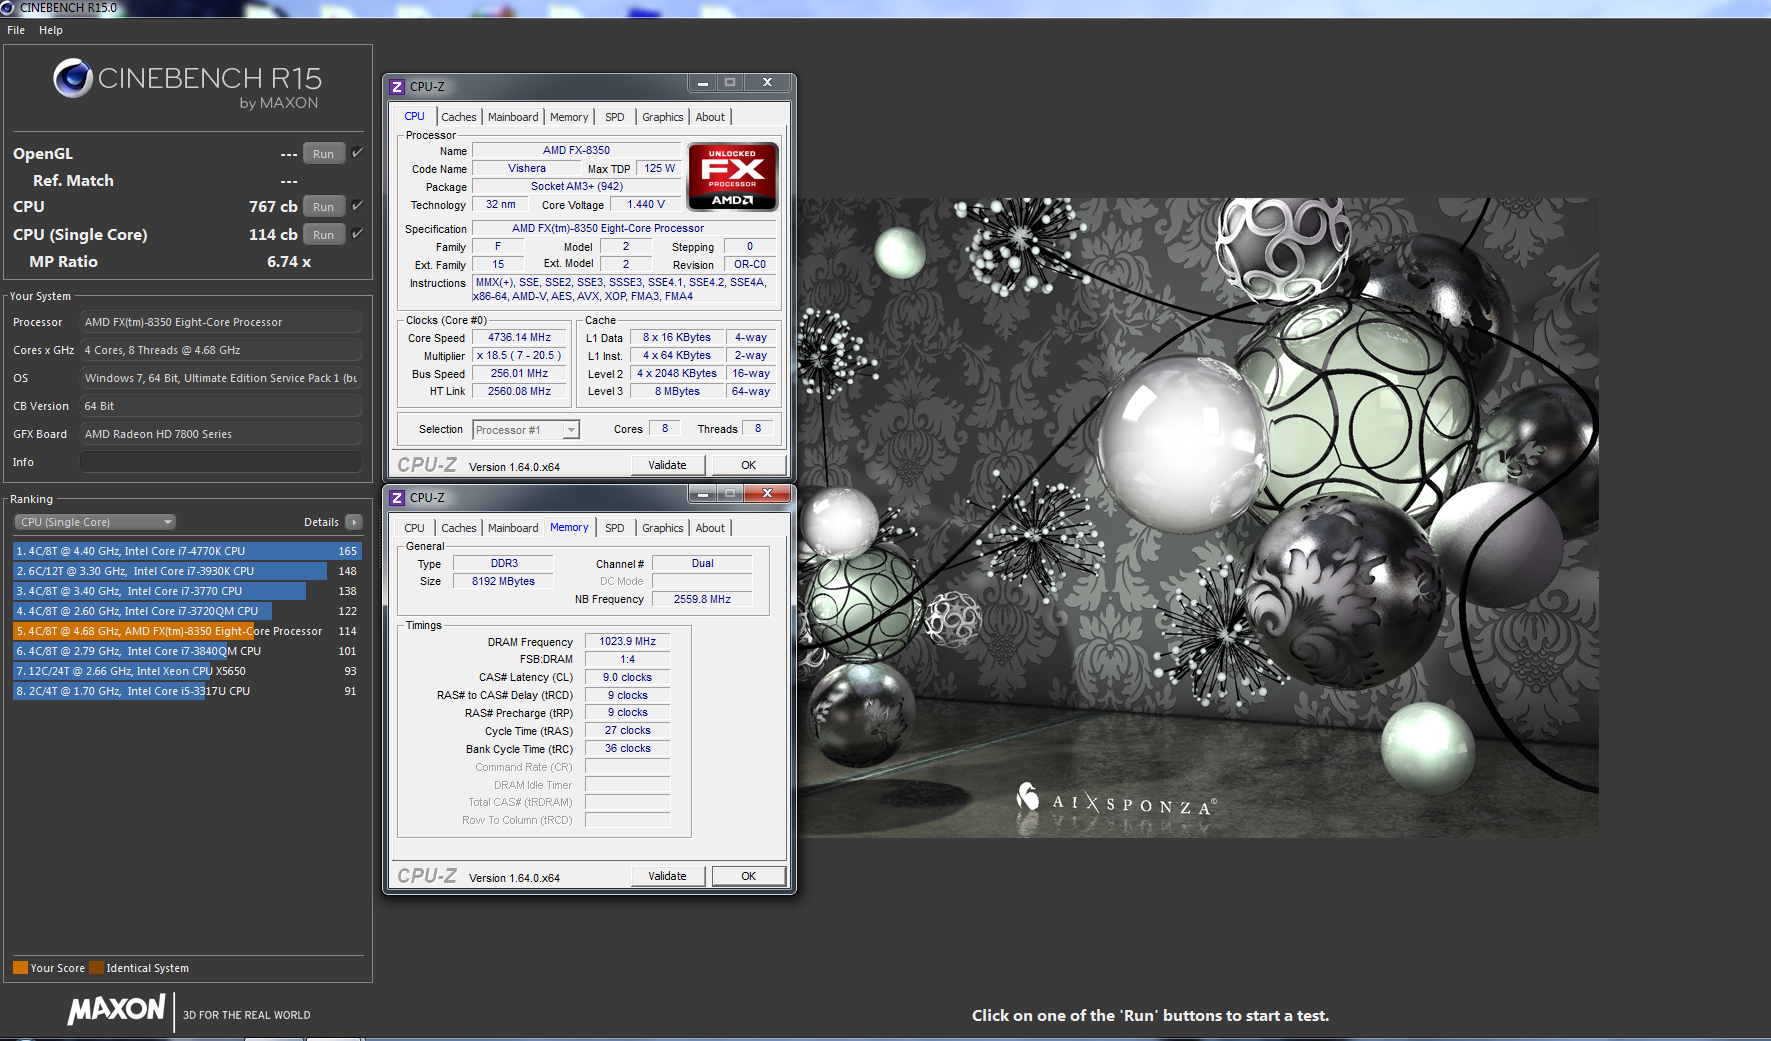 Top CINEBENCH R15 CPU Scores - Page 10 - Overclock net - An